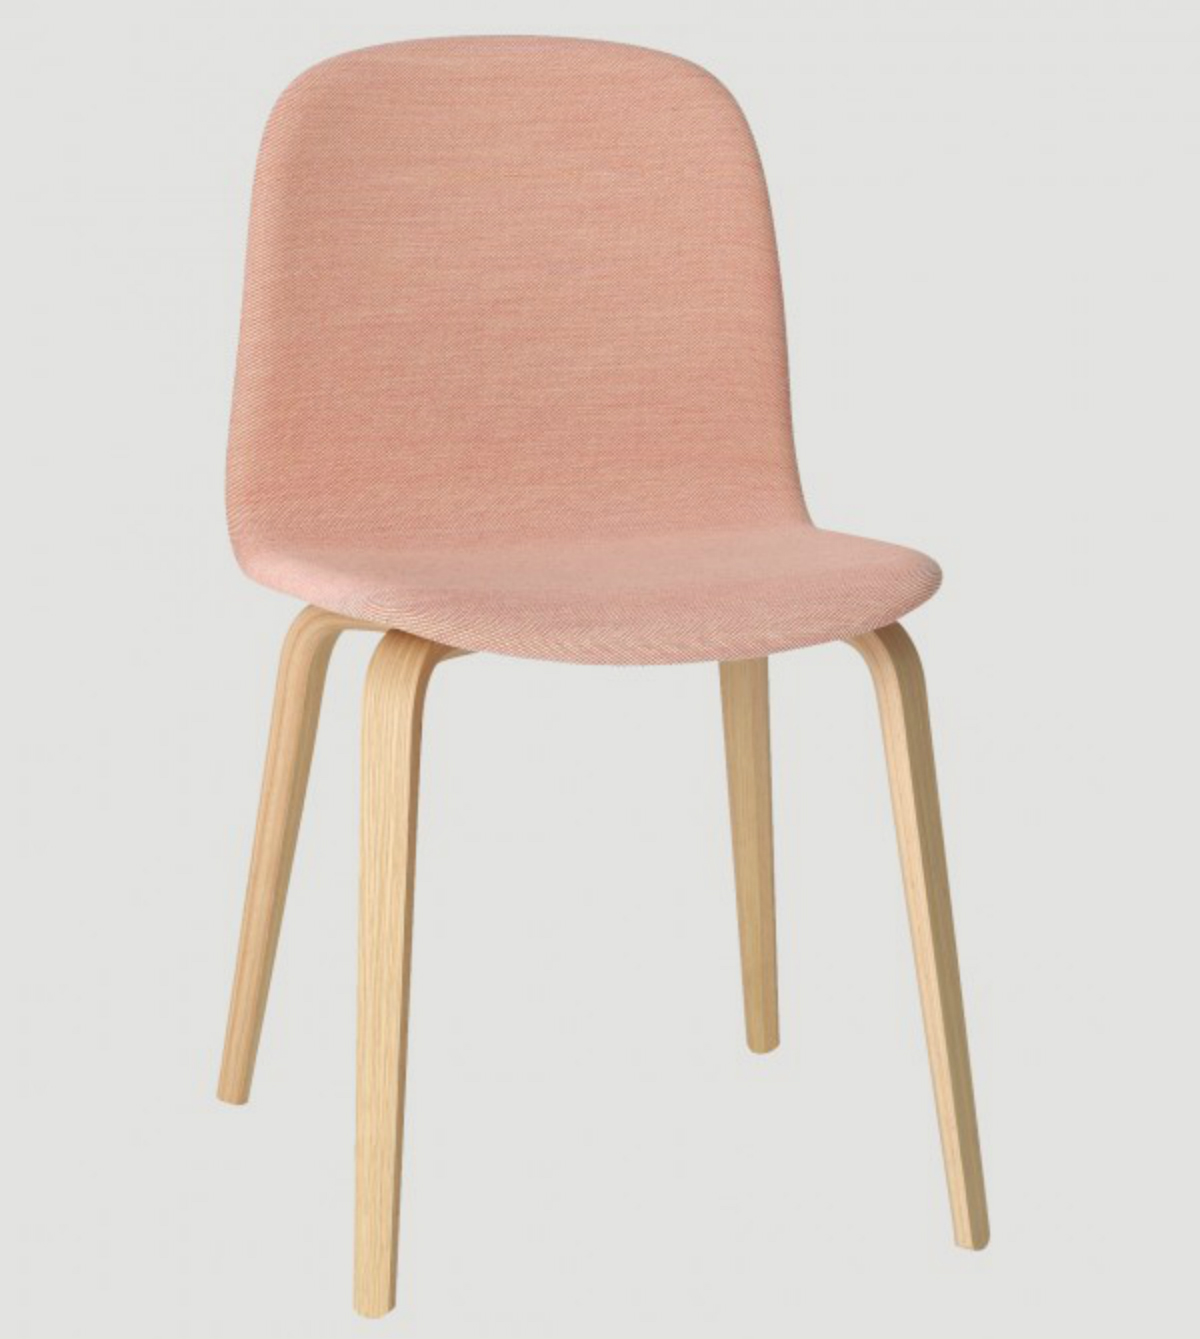 Muuto a New Perspective on Scandinavian Design scandinavian design Muuto a New Perspective on Scandinavian Design visu woodbase  oak steelcut trio 515 4